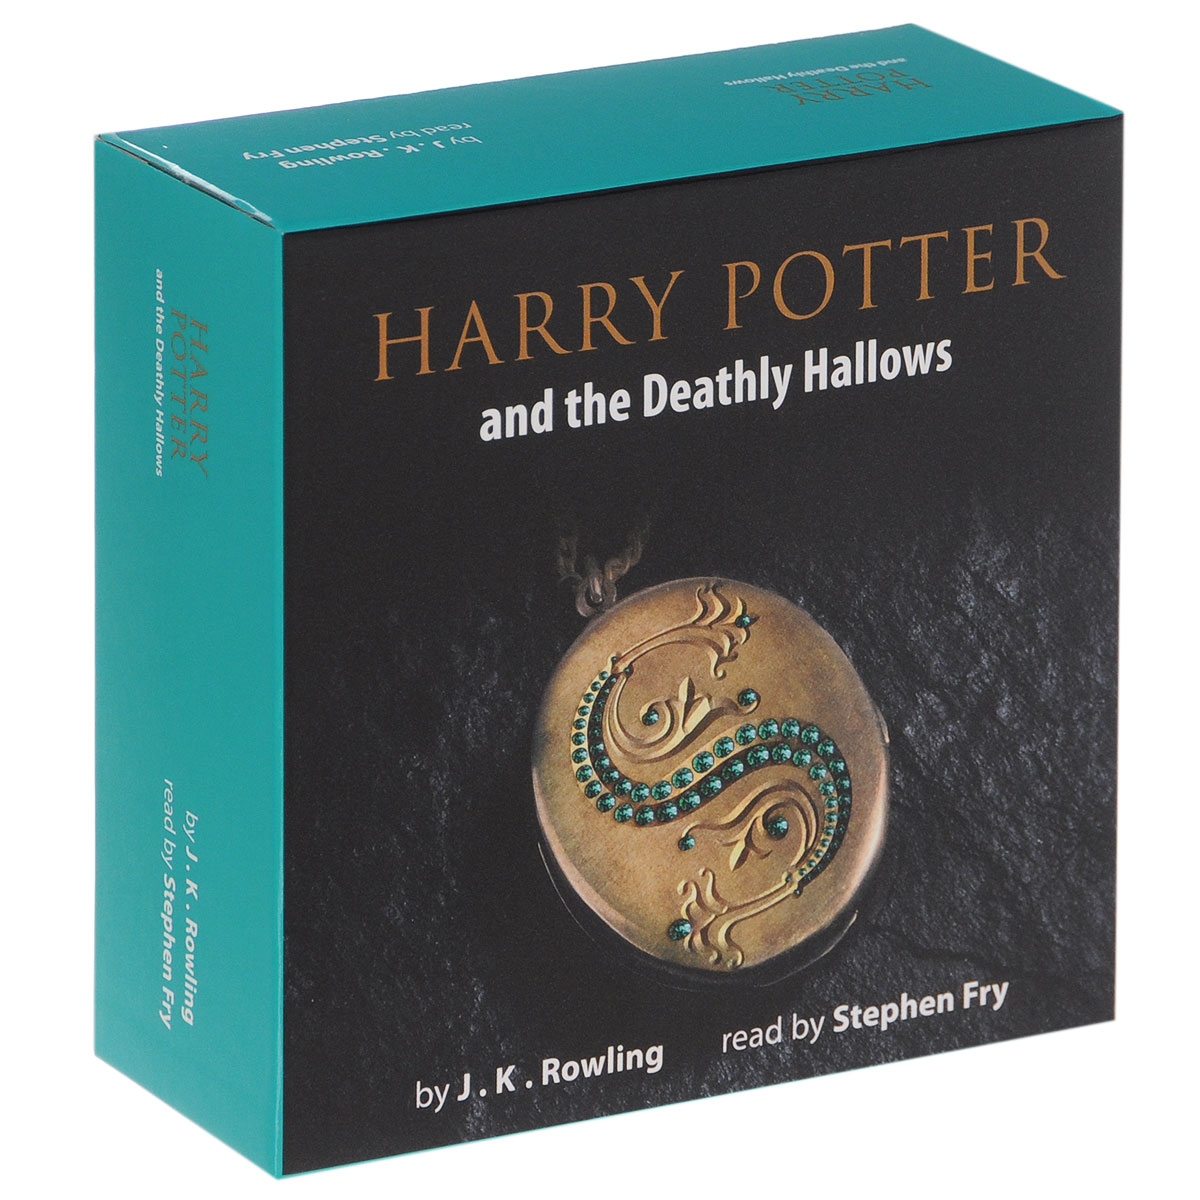 Harry Potter and the Deathly Hallows (аудиокнига на 20 CD)